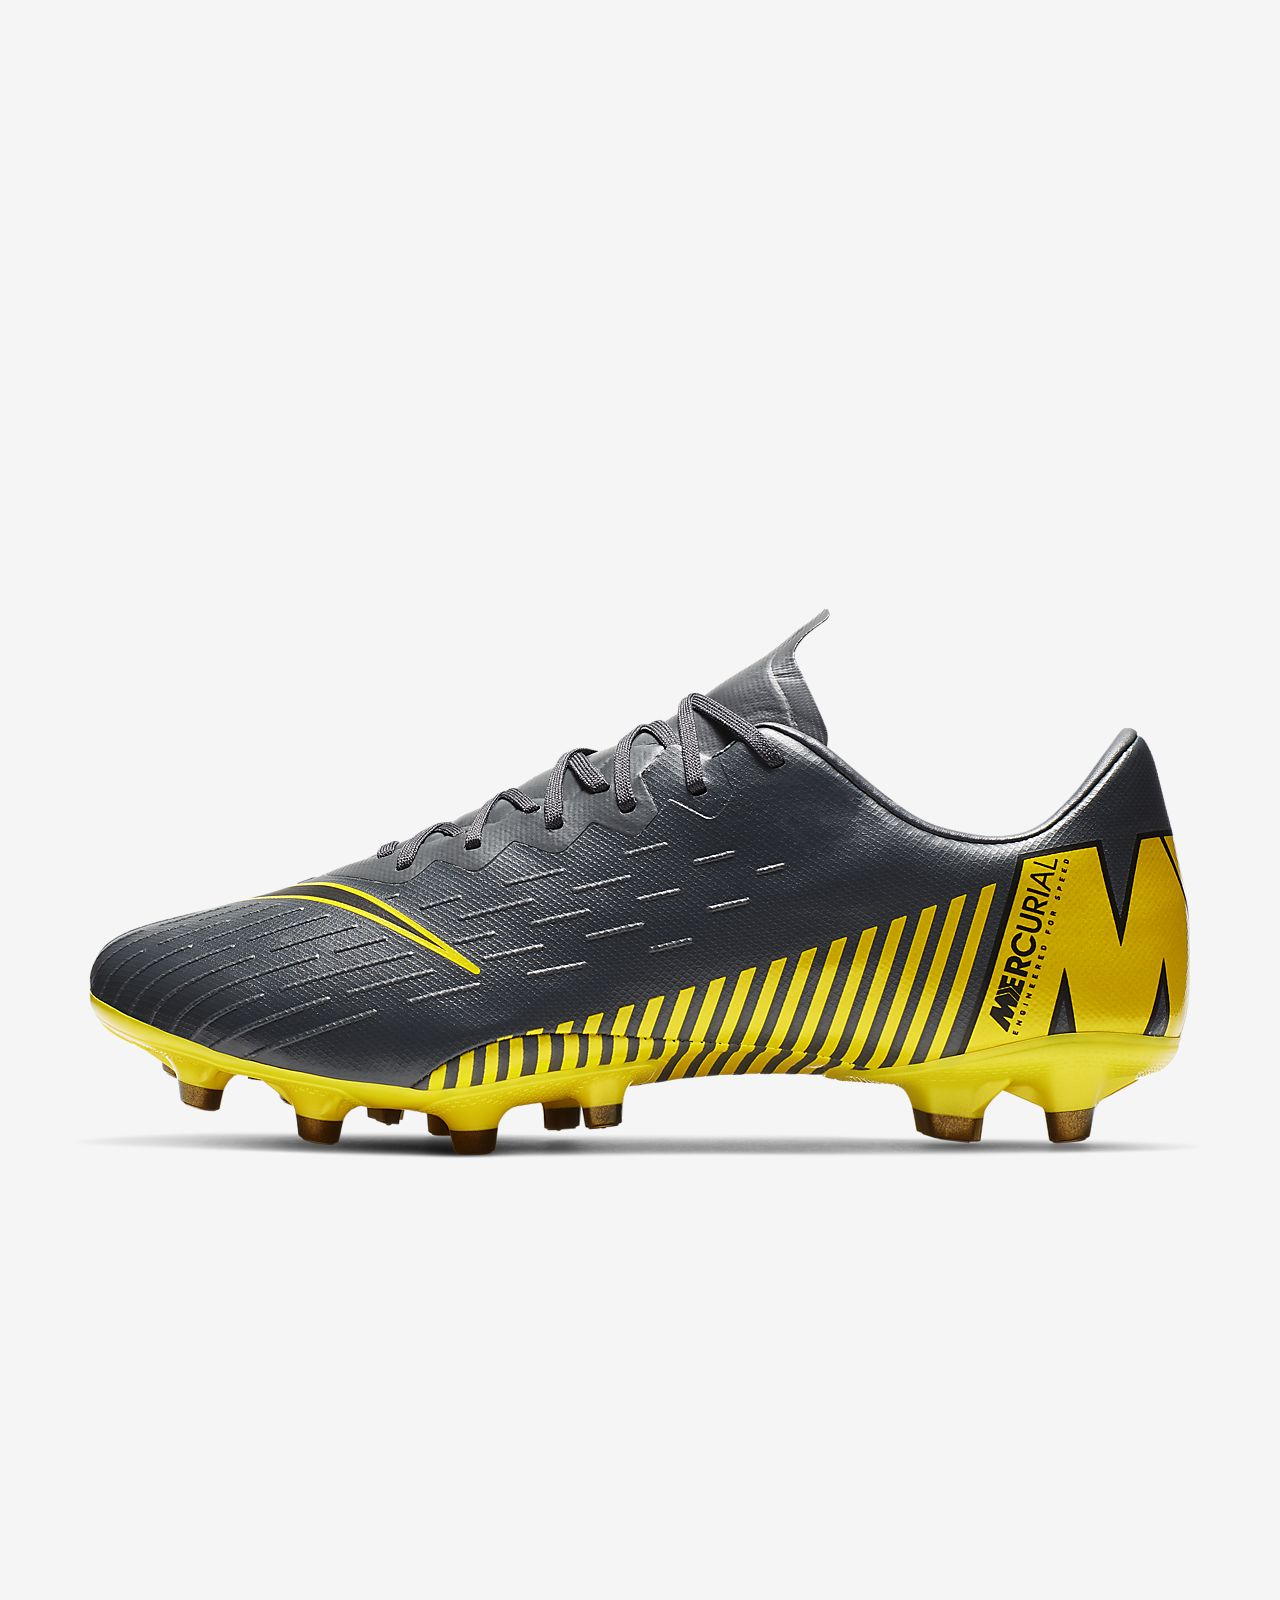 e3bbaa74a Nike Mercurial Vapor XII Pro AG-PRO Artificial-Grass Football Boot ...